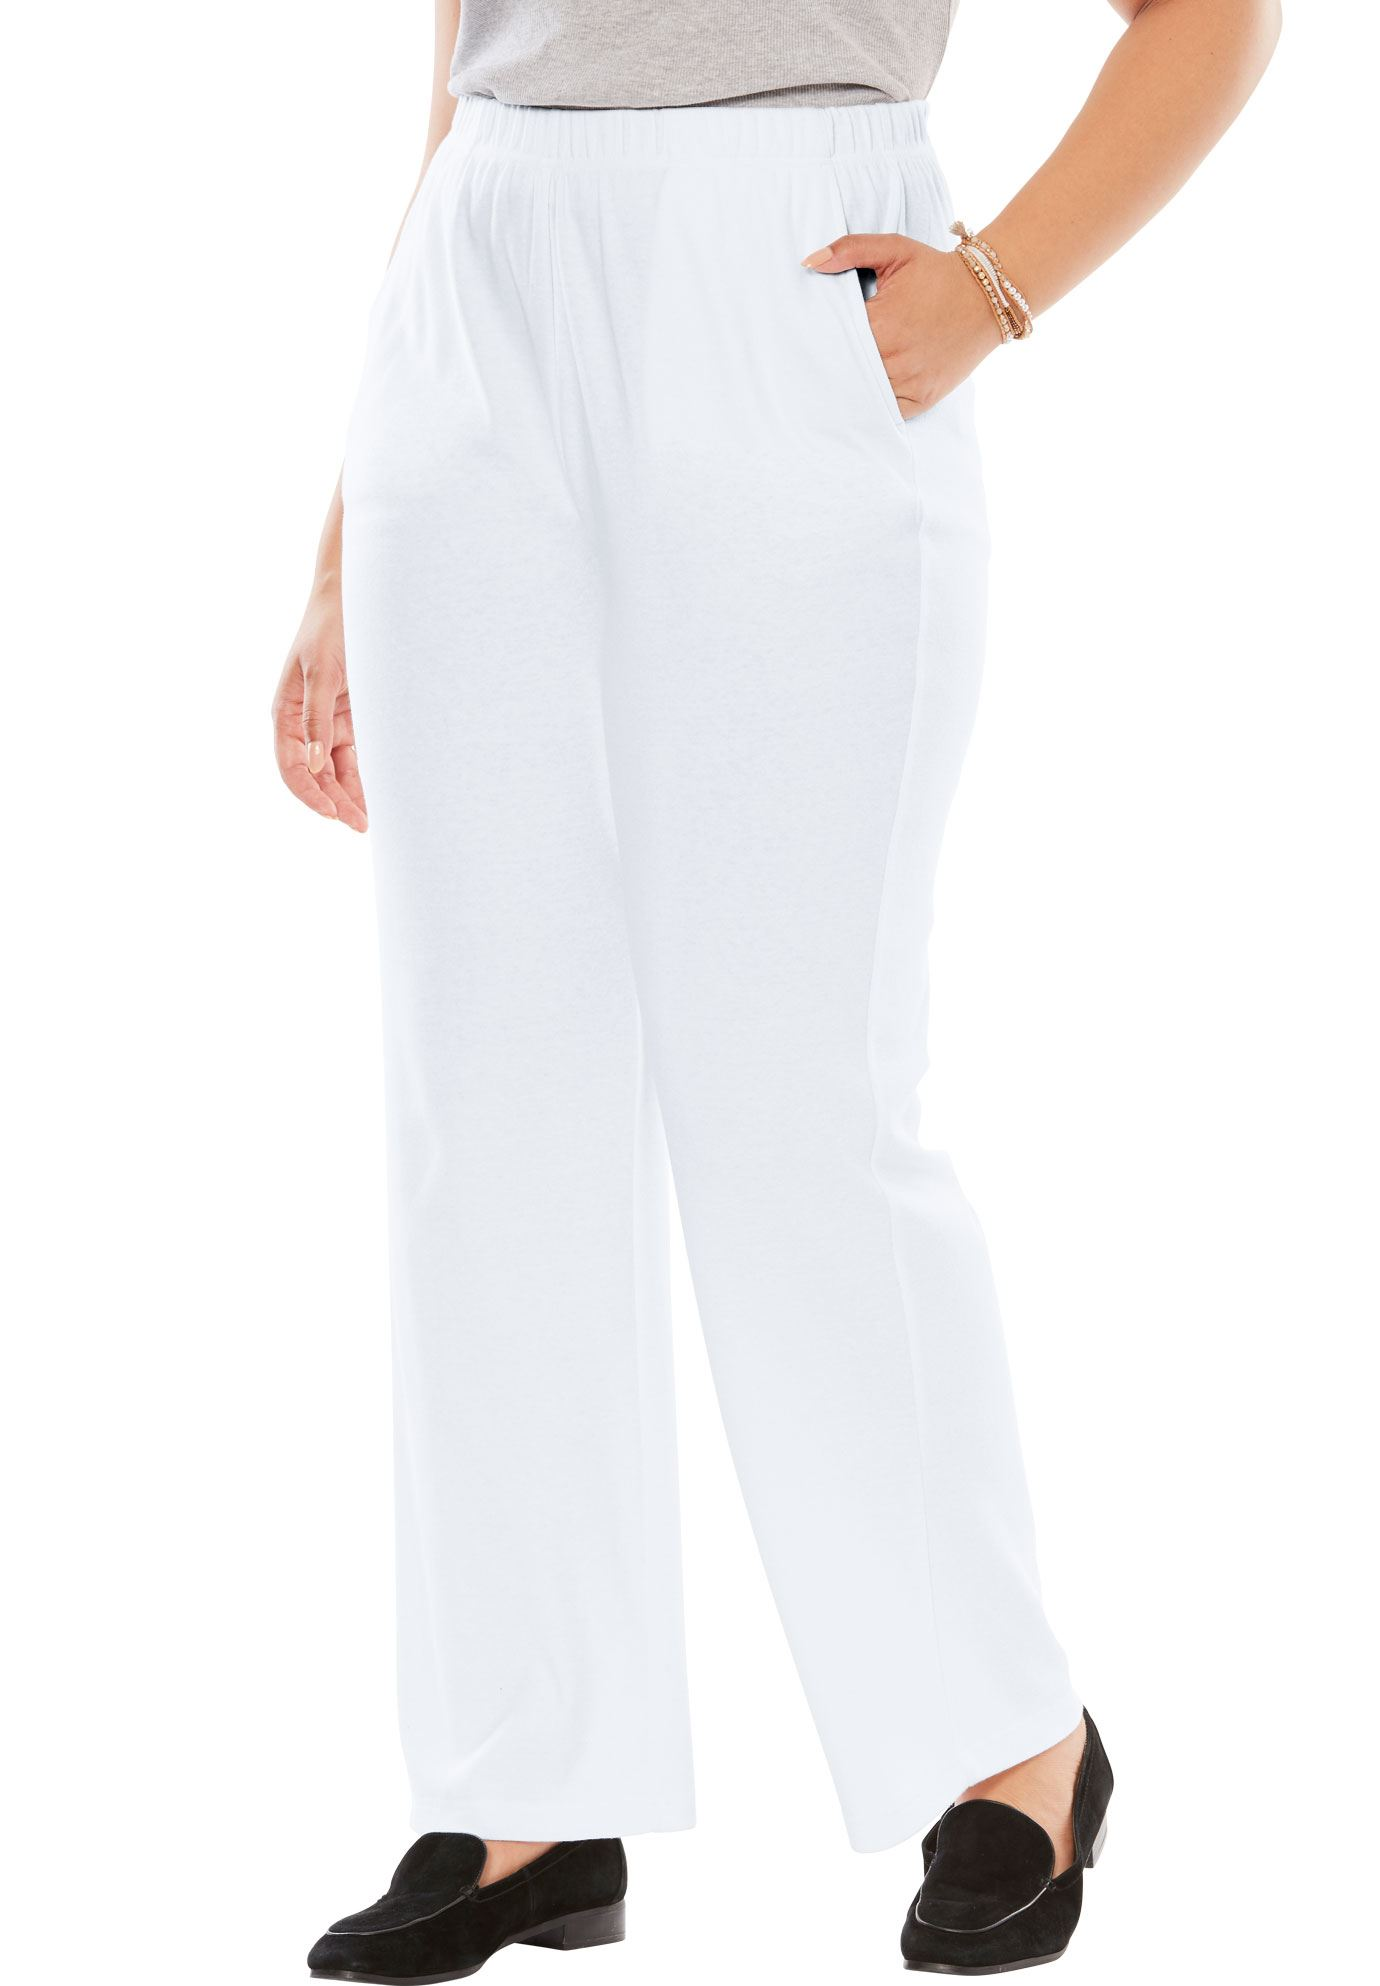 Woman Within Plus Size 7-day Knit Wide Leg Pant